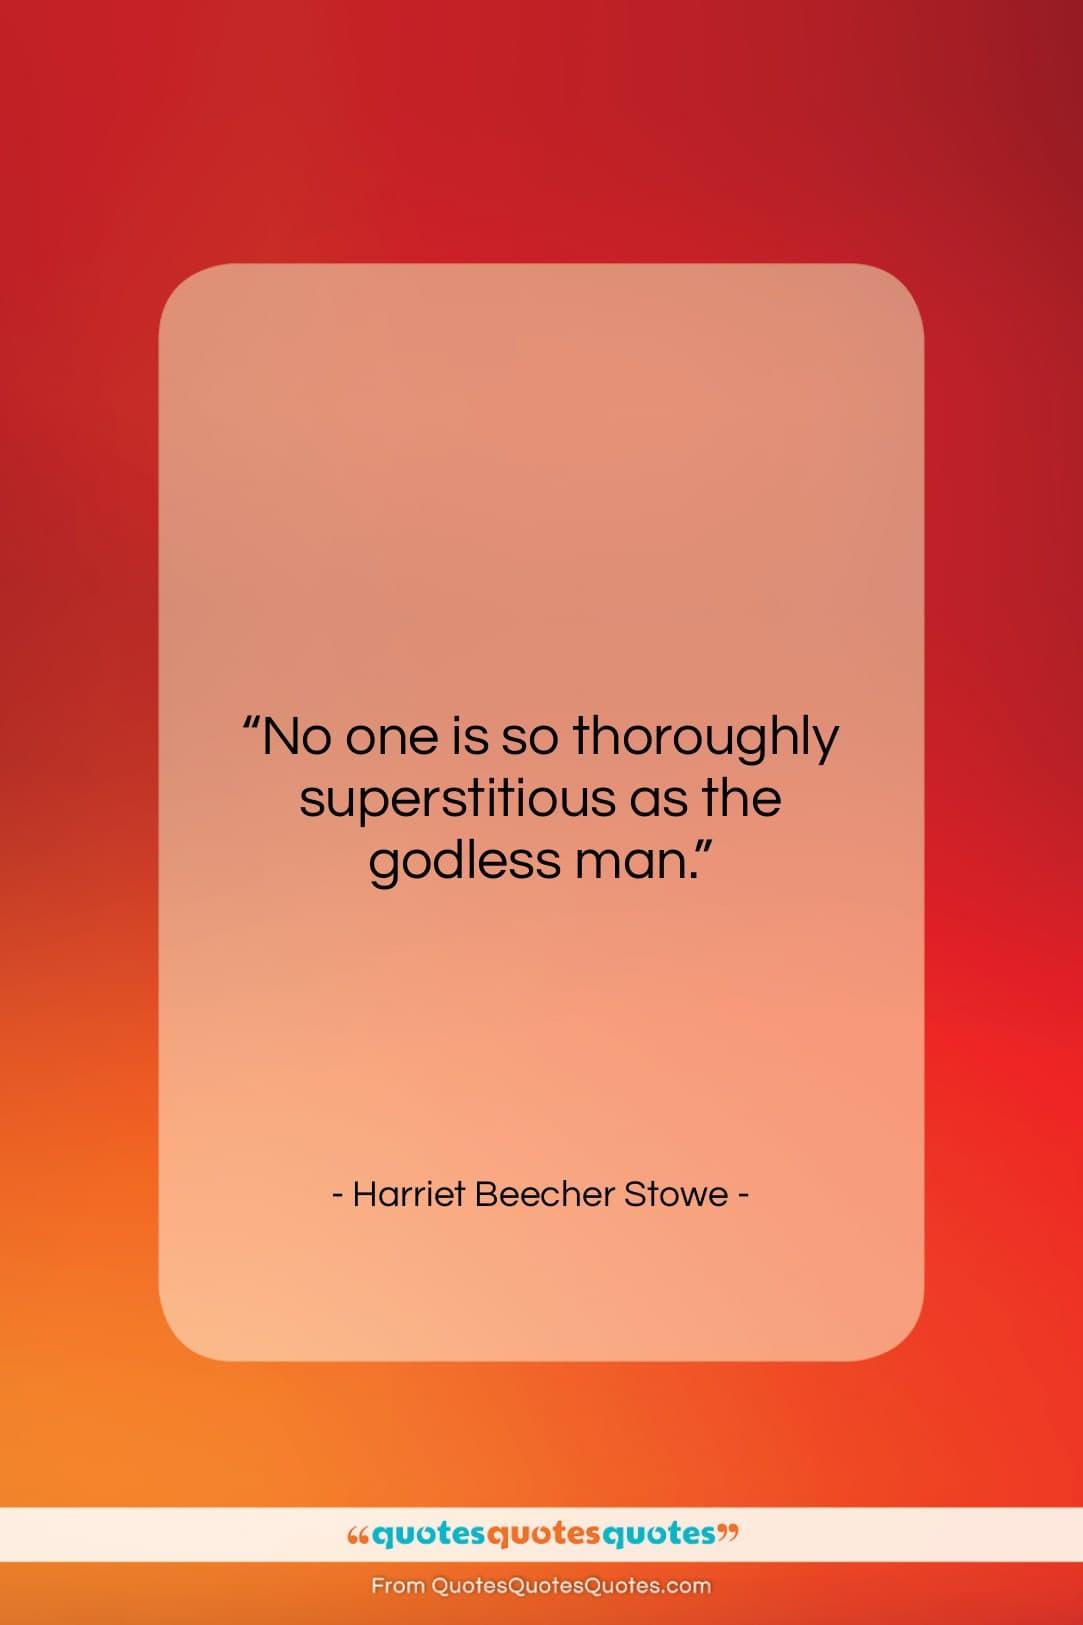 """Harriet Beecher Stowe quote: """"No one is so thoroughly superstitious as…""""- at QuotesQuotesQuotes.com"""